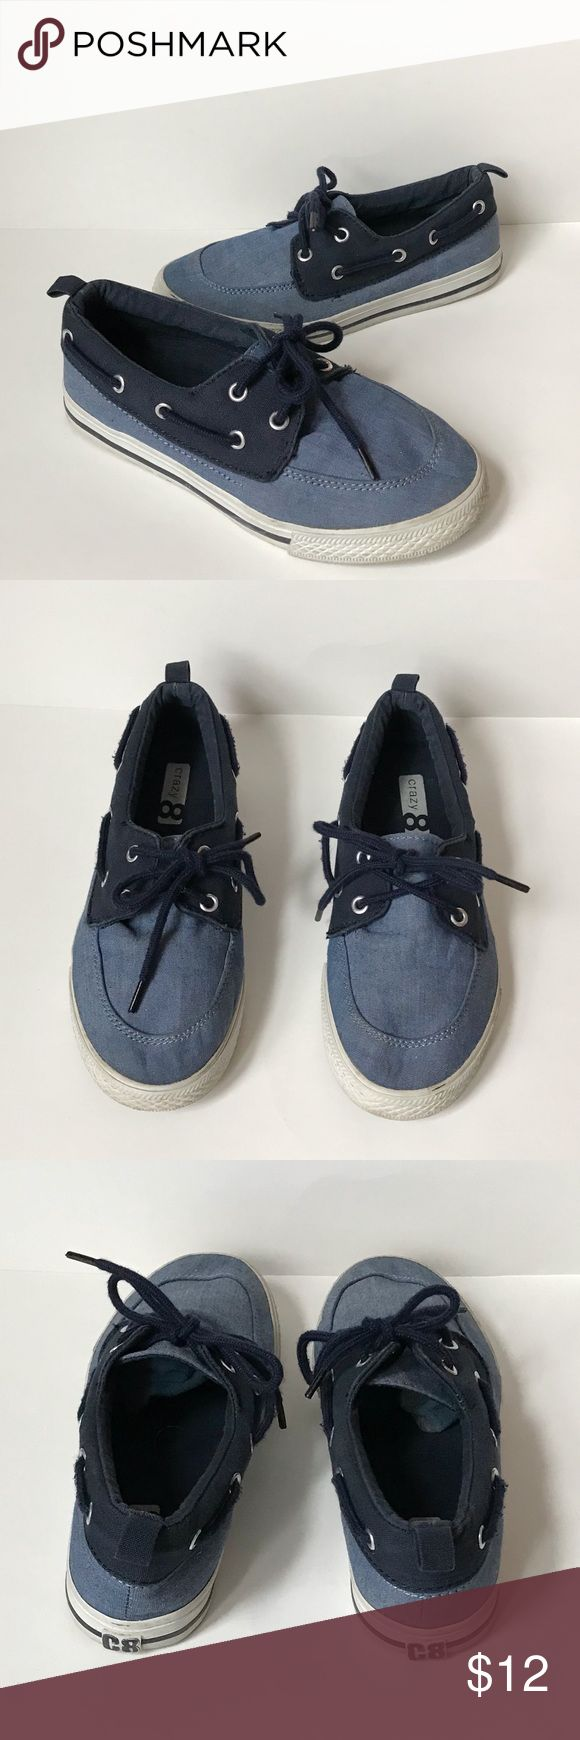 Crazy 8 Boys Blue Boat Shoes Simply adorable! These boat shoes are perfect for the spring. The shoes have a color block blue and laces. Crazy 8 Shoes